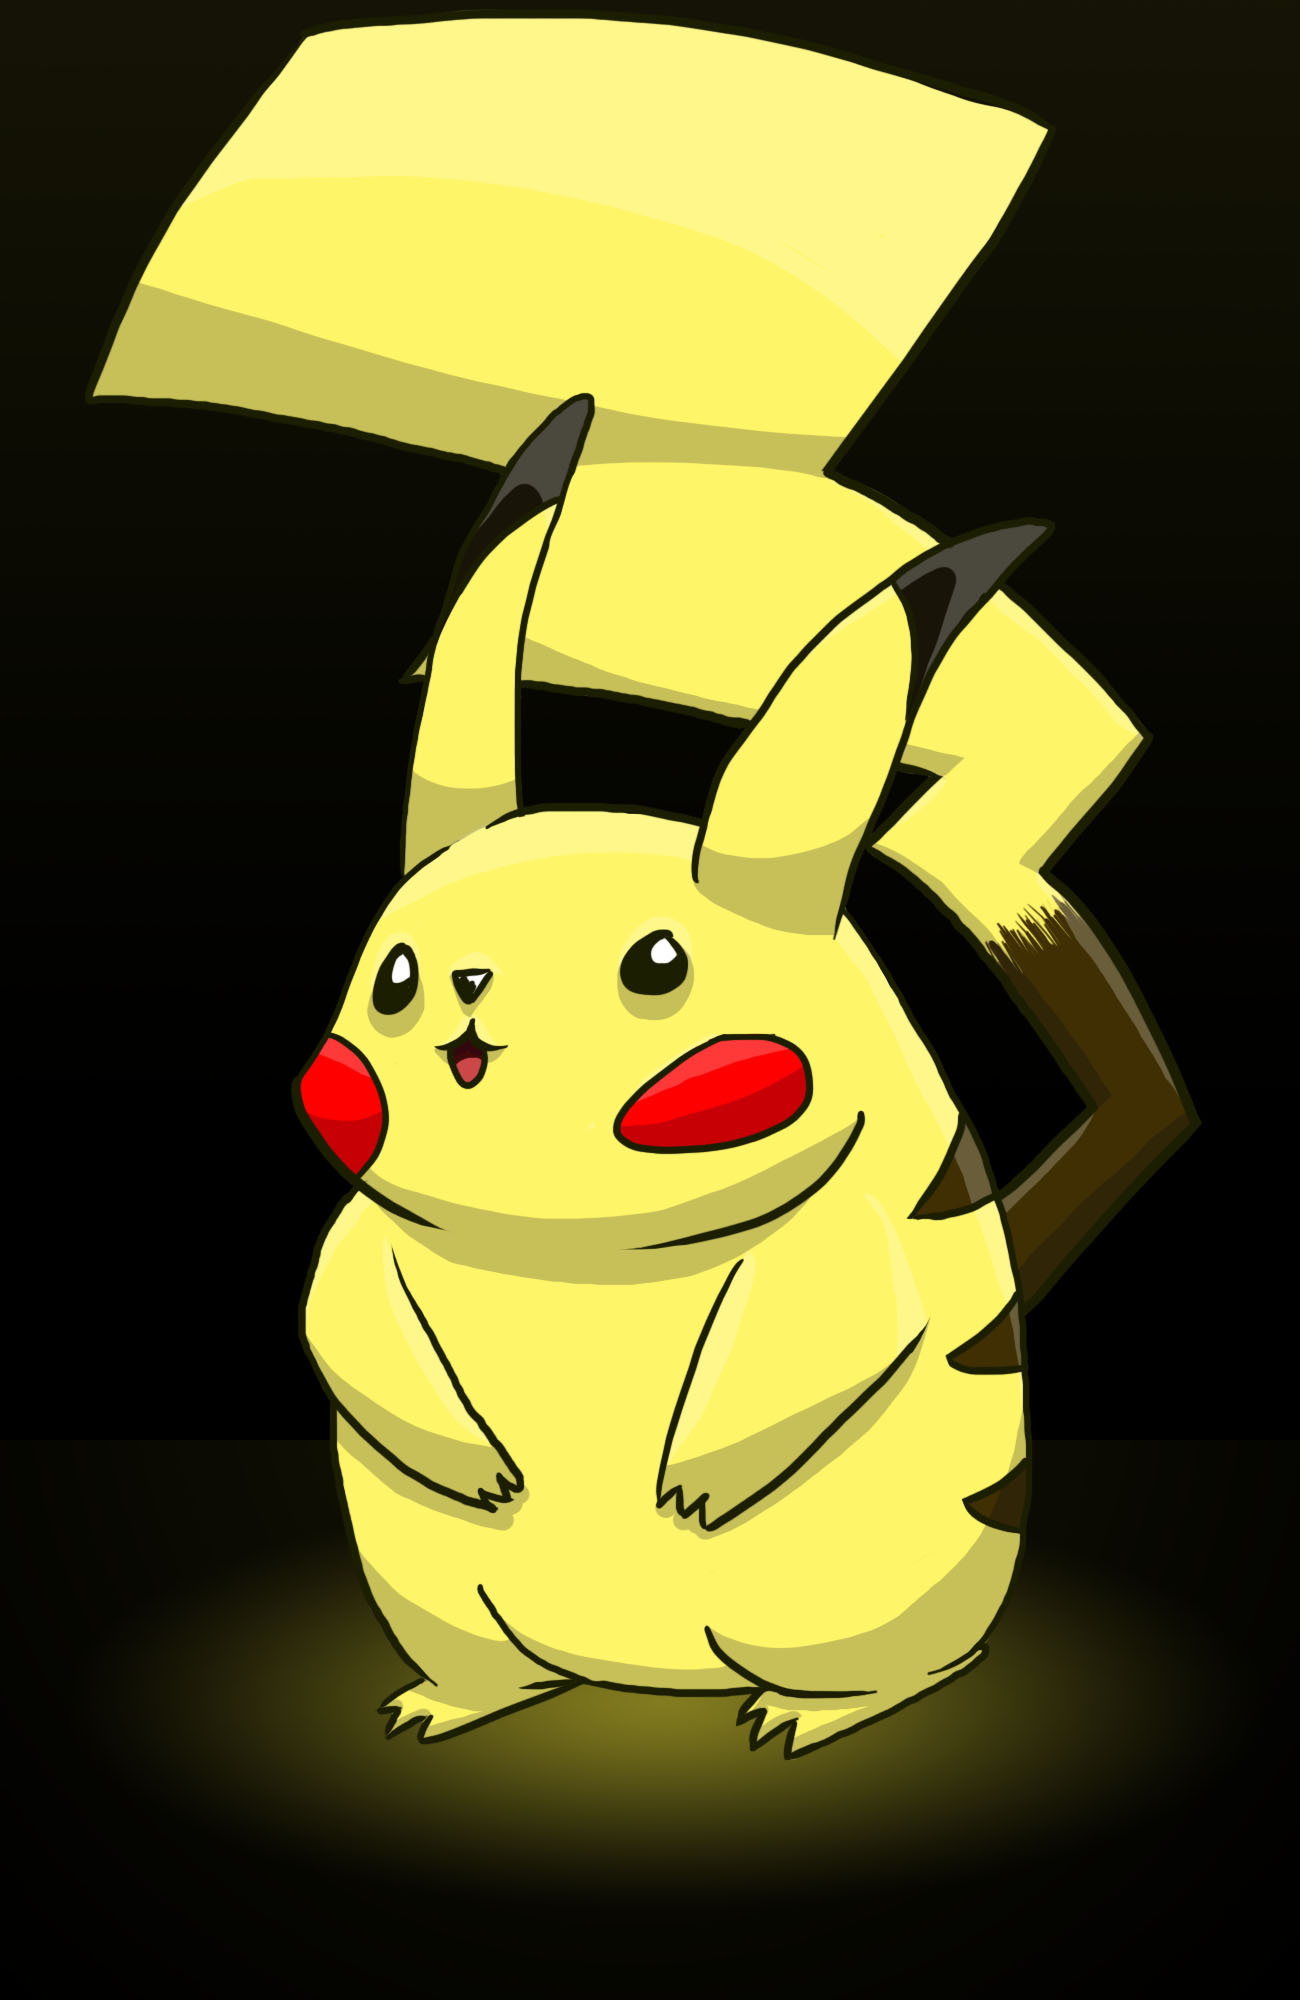 Pika the first